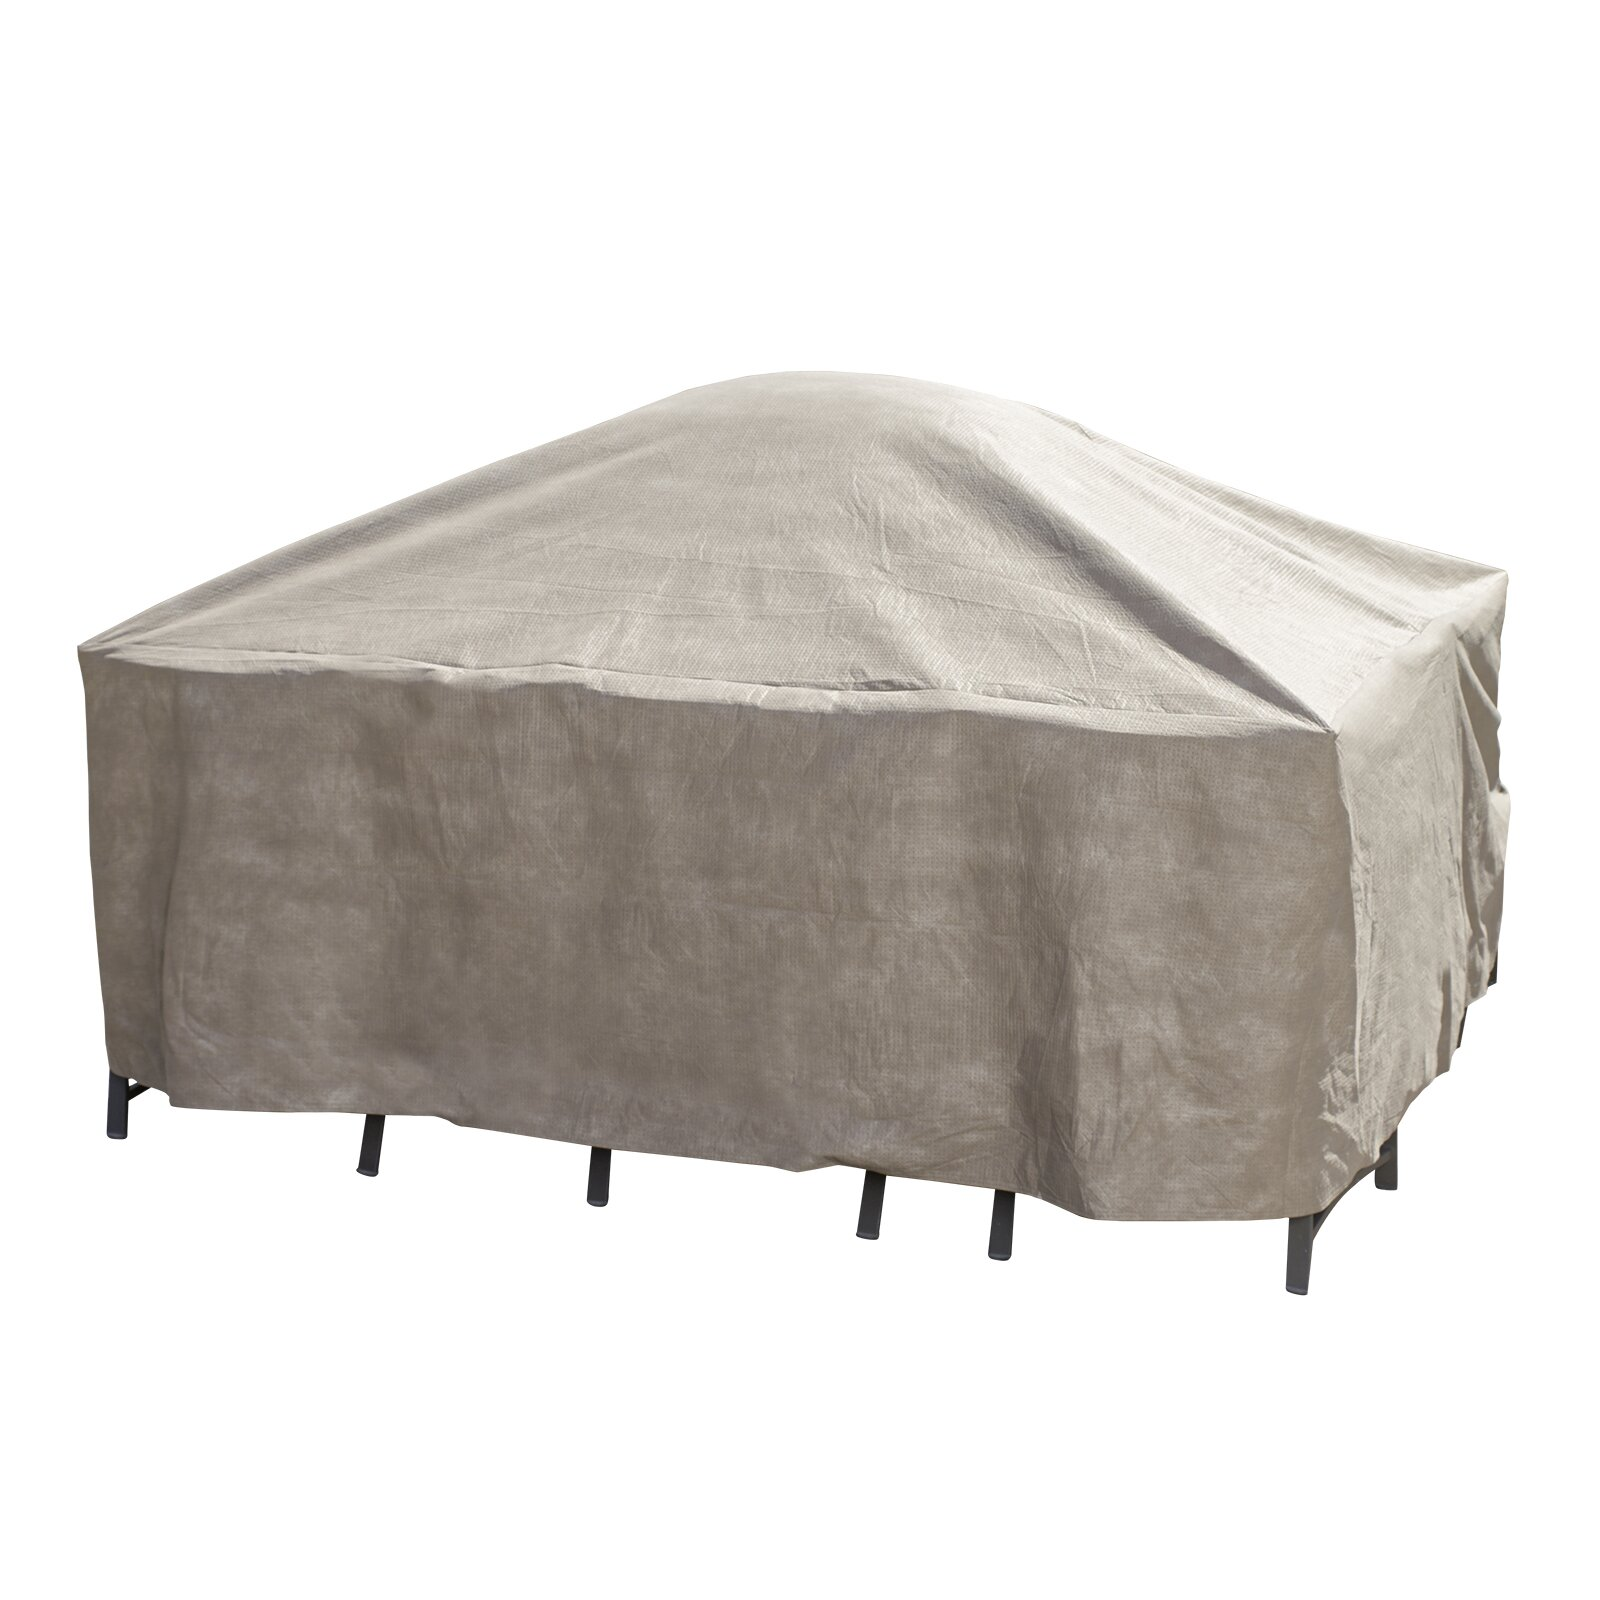 patio table and chair set cover hickory sofa duck covers elite square